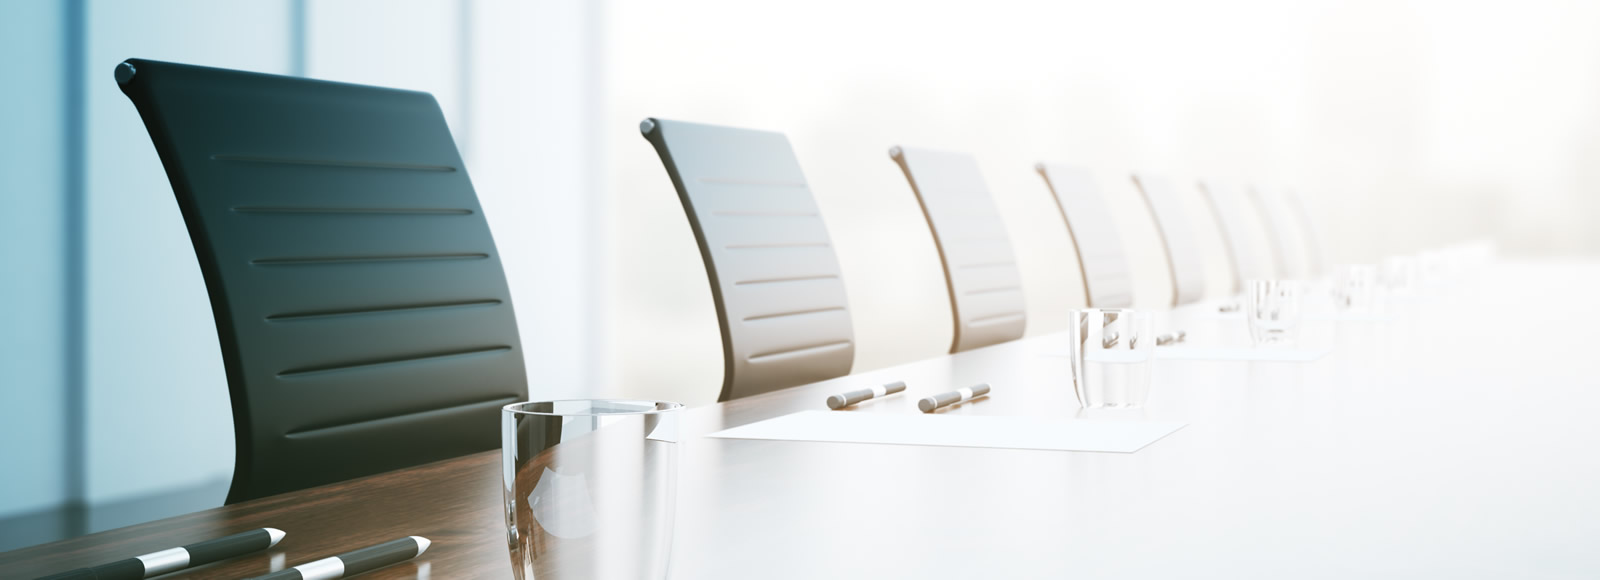 Chairs in a boardroom